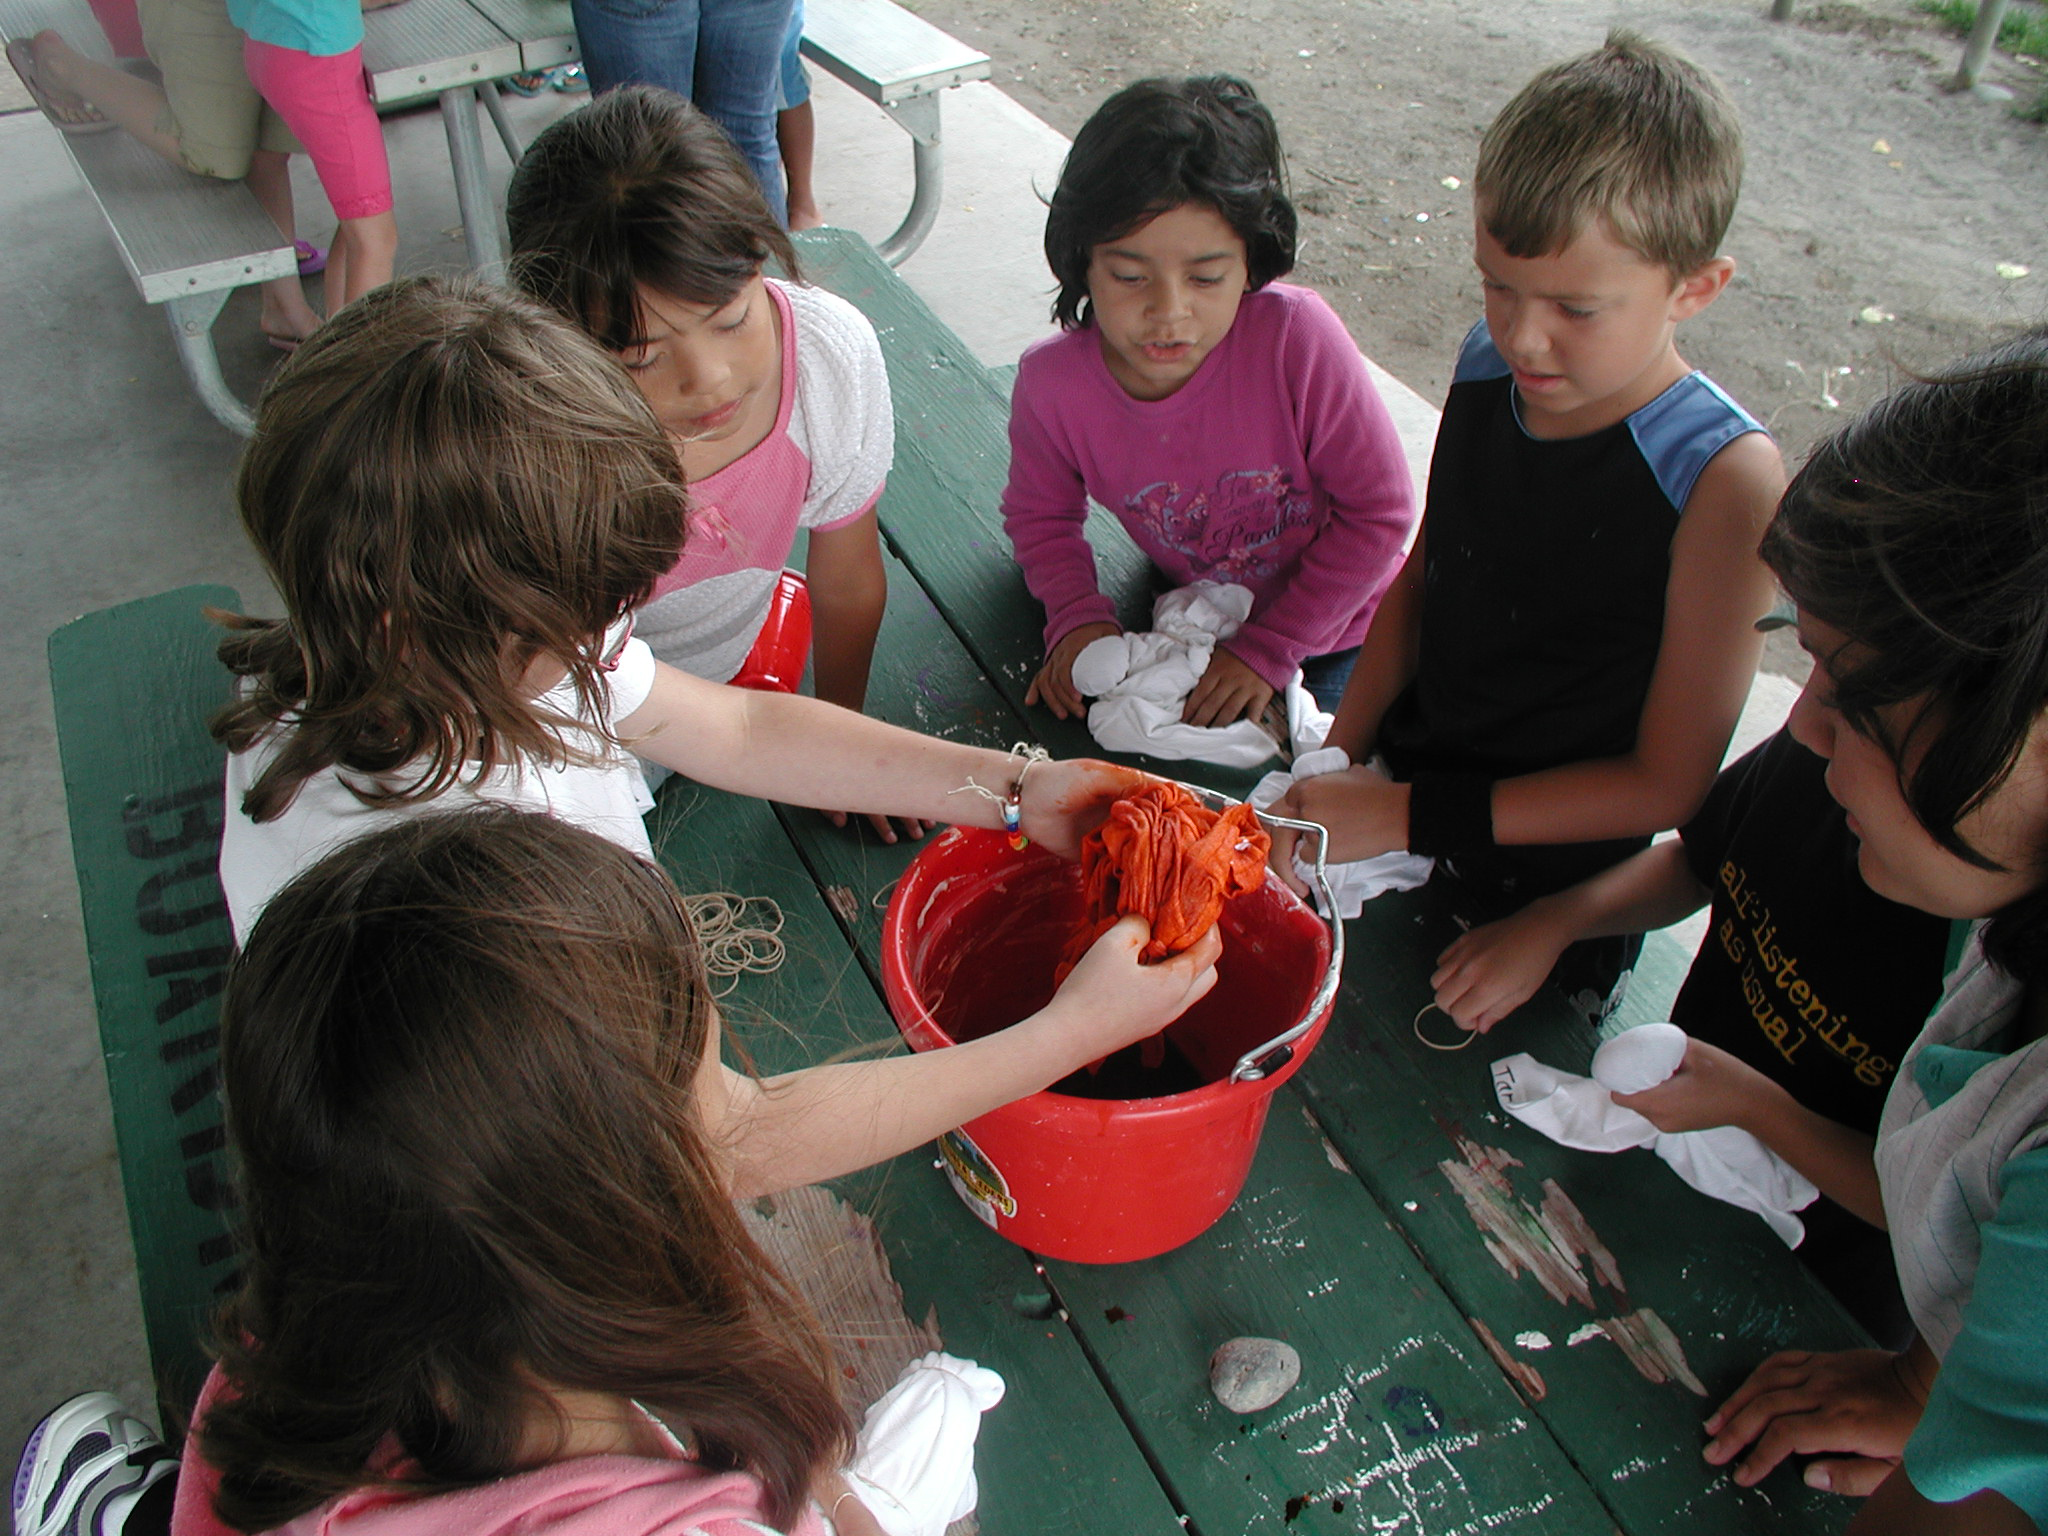 Kids participating in a fund outdoor tye dying activity.